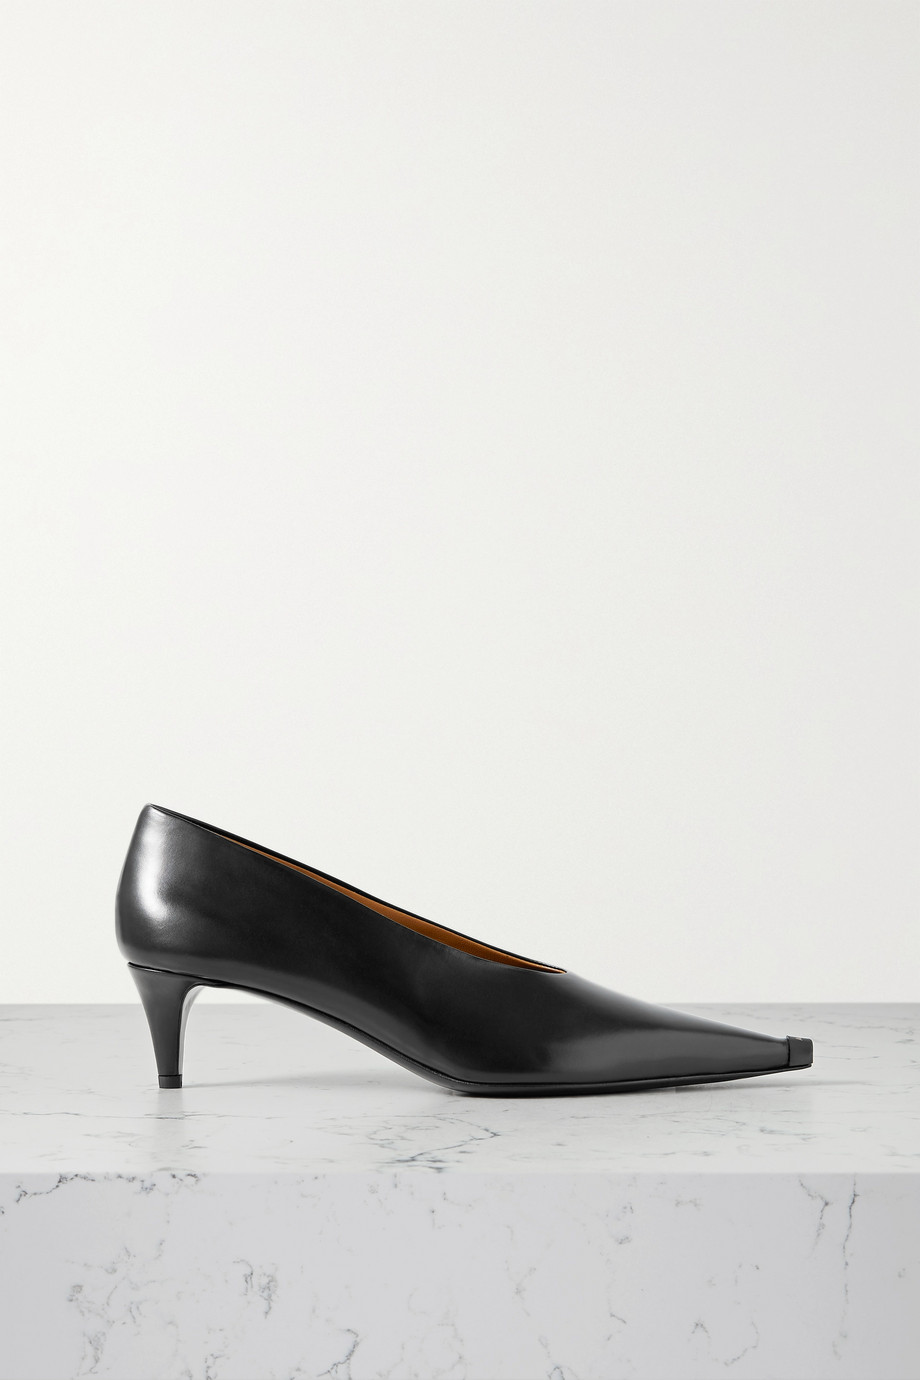 ACNE STUDIOS Leather pumps